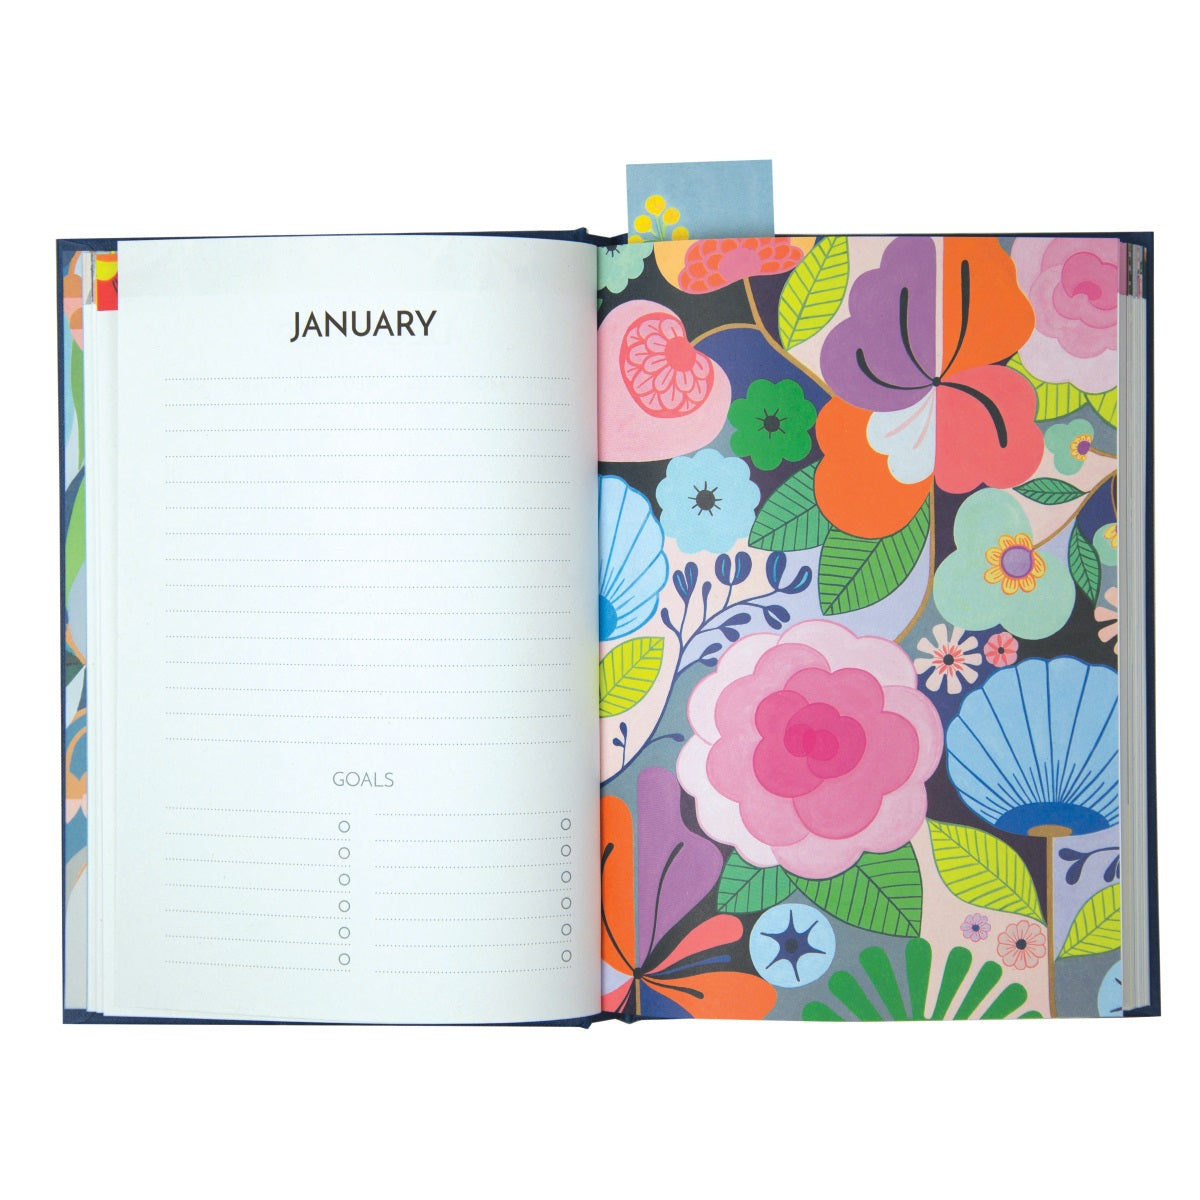 2019 Claire Ishino Diary - Journals - Throw Some Seeds - Australian gardening gifts and eco products online!